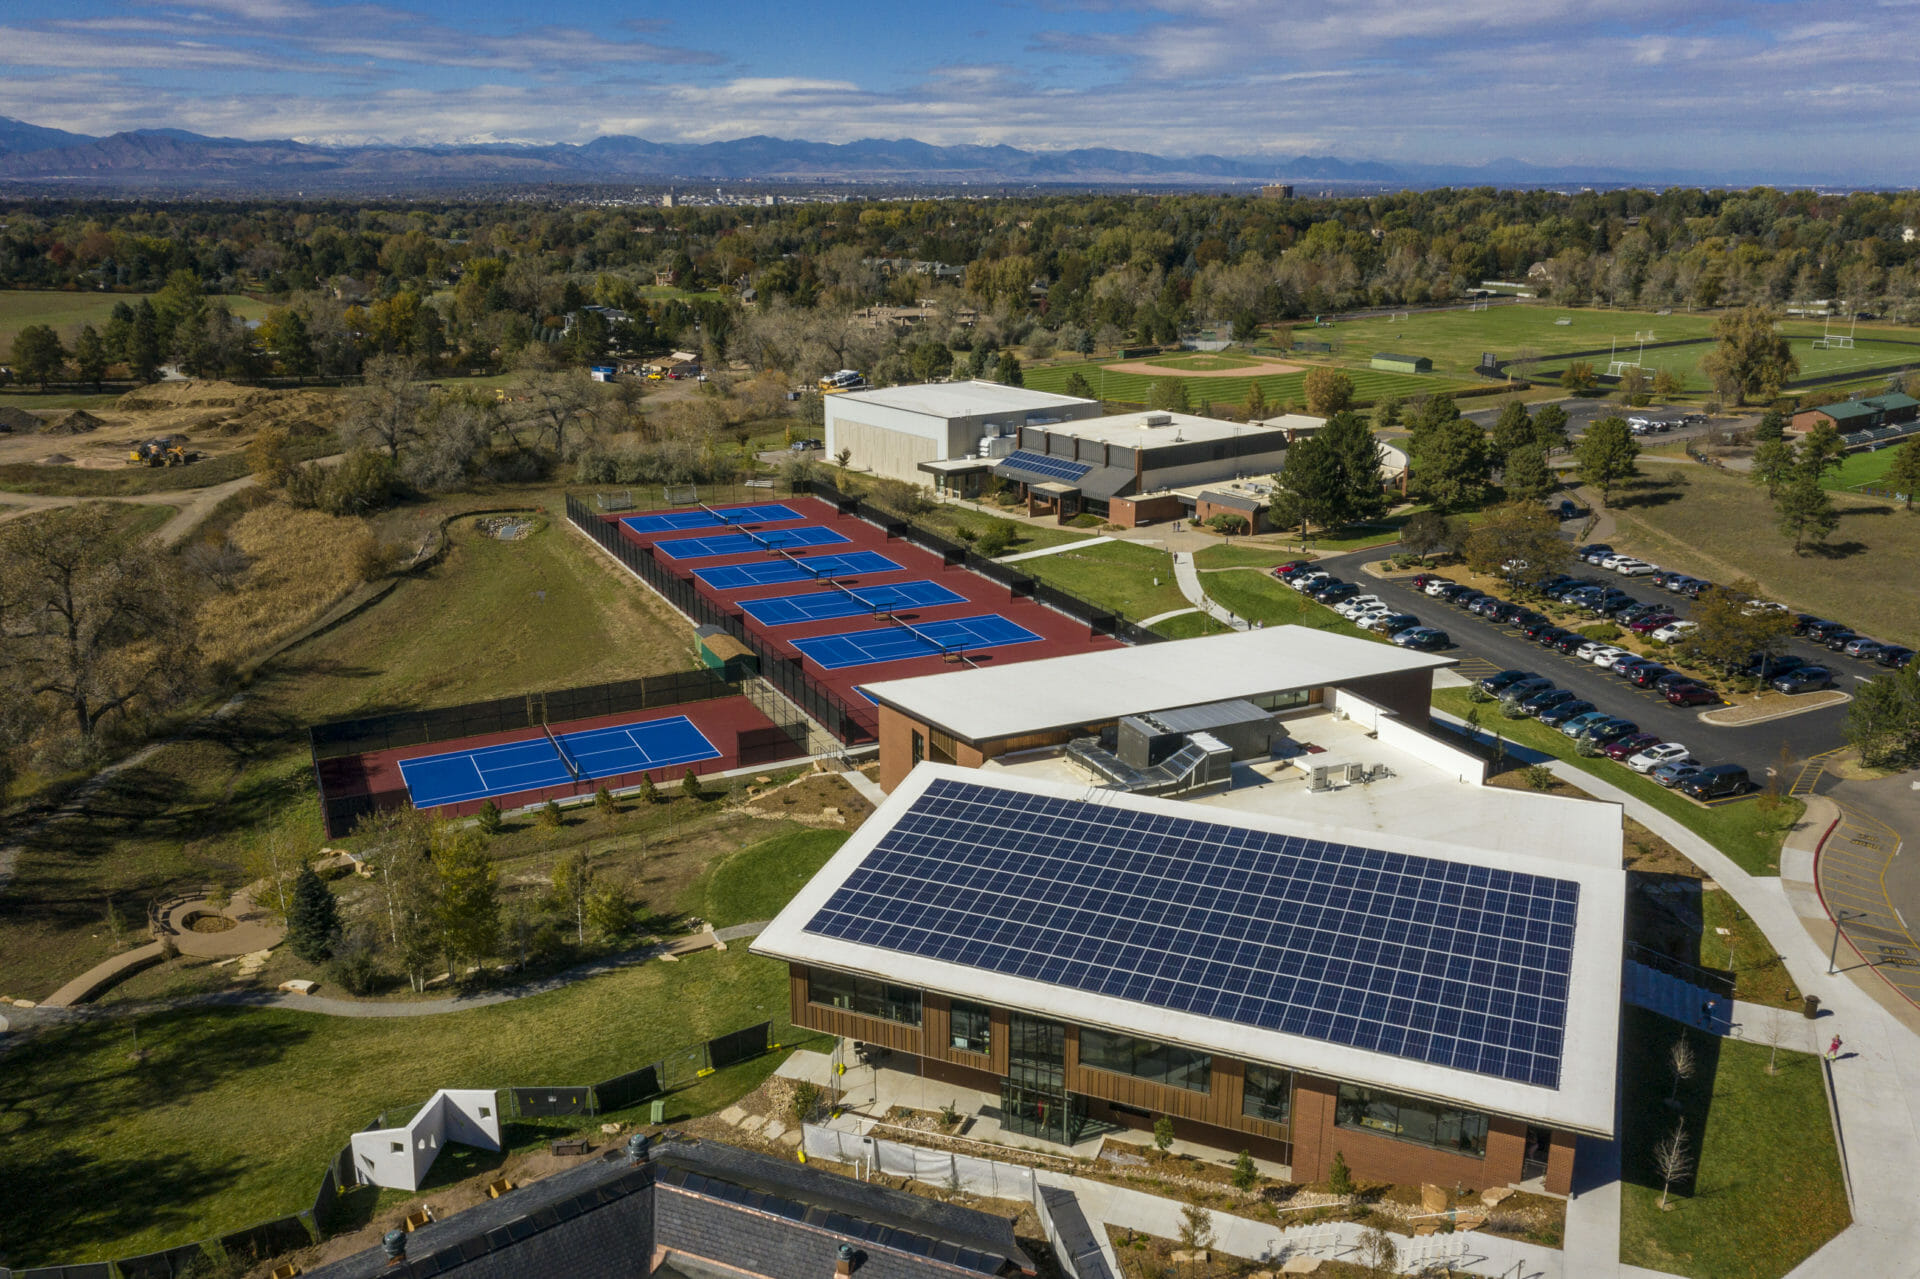 commercial solar panels on school in englewood colorado with playing fields and mountains in background